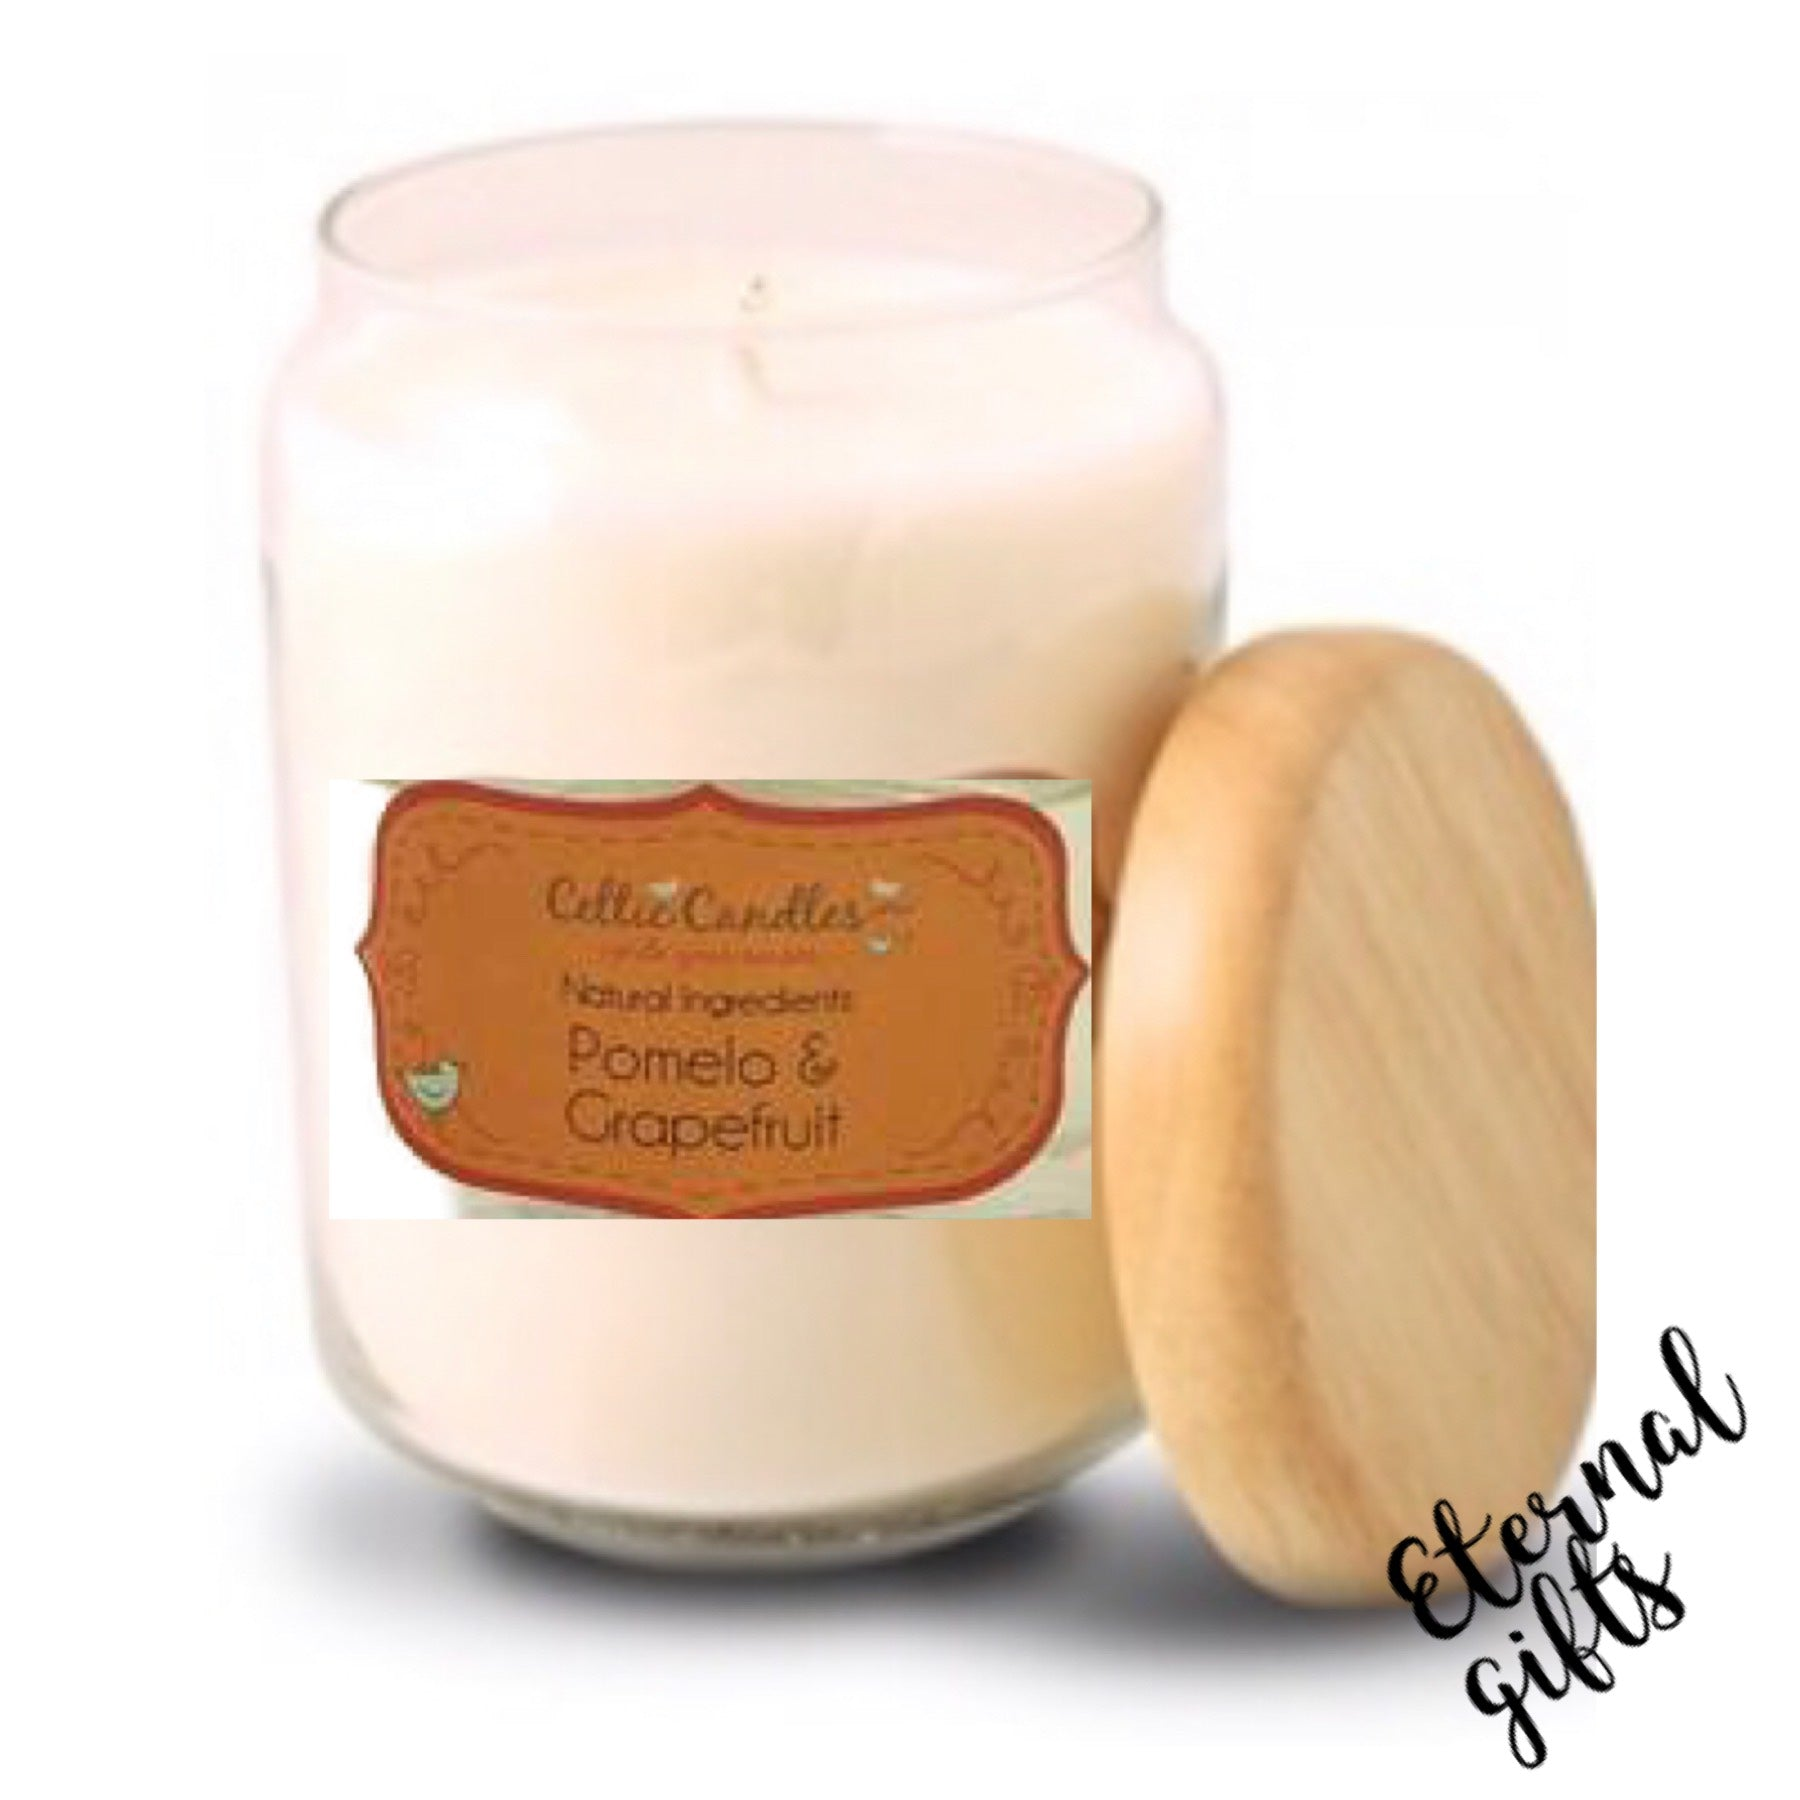 Pomelo & Grapefruit - Large Pop Jar Candle- Celtic Candles